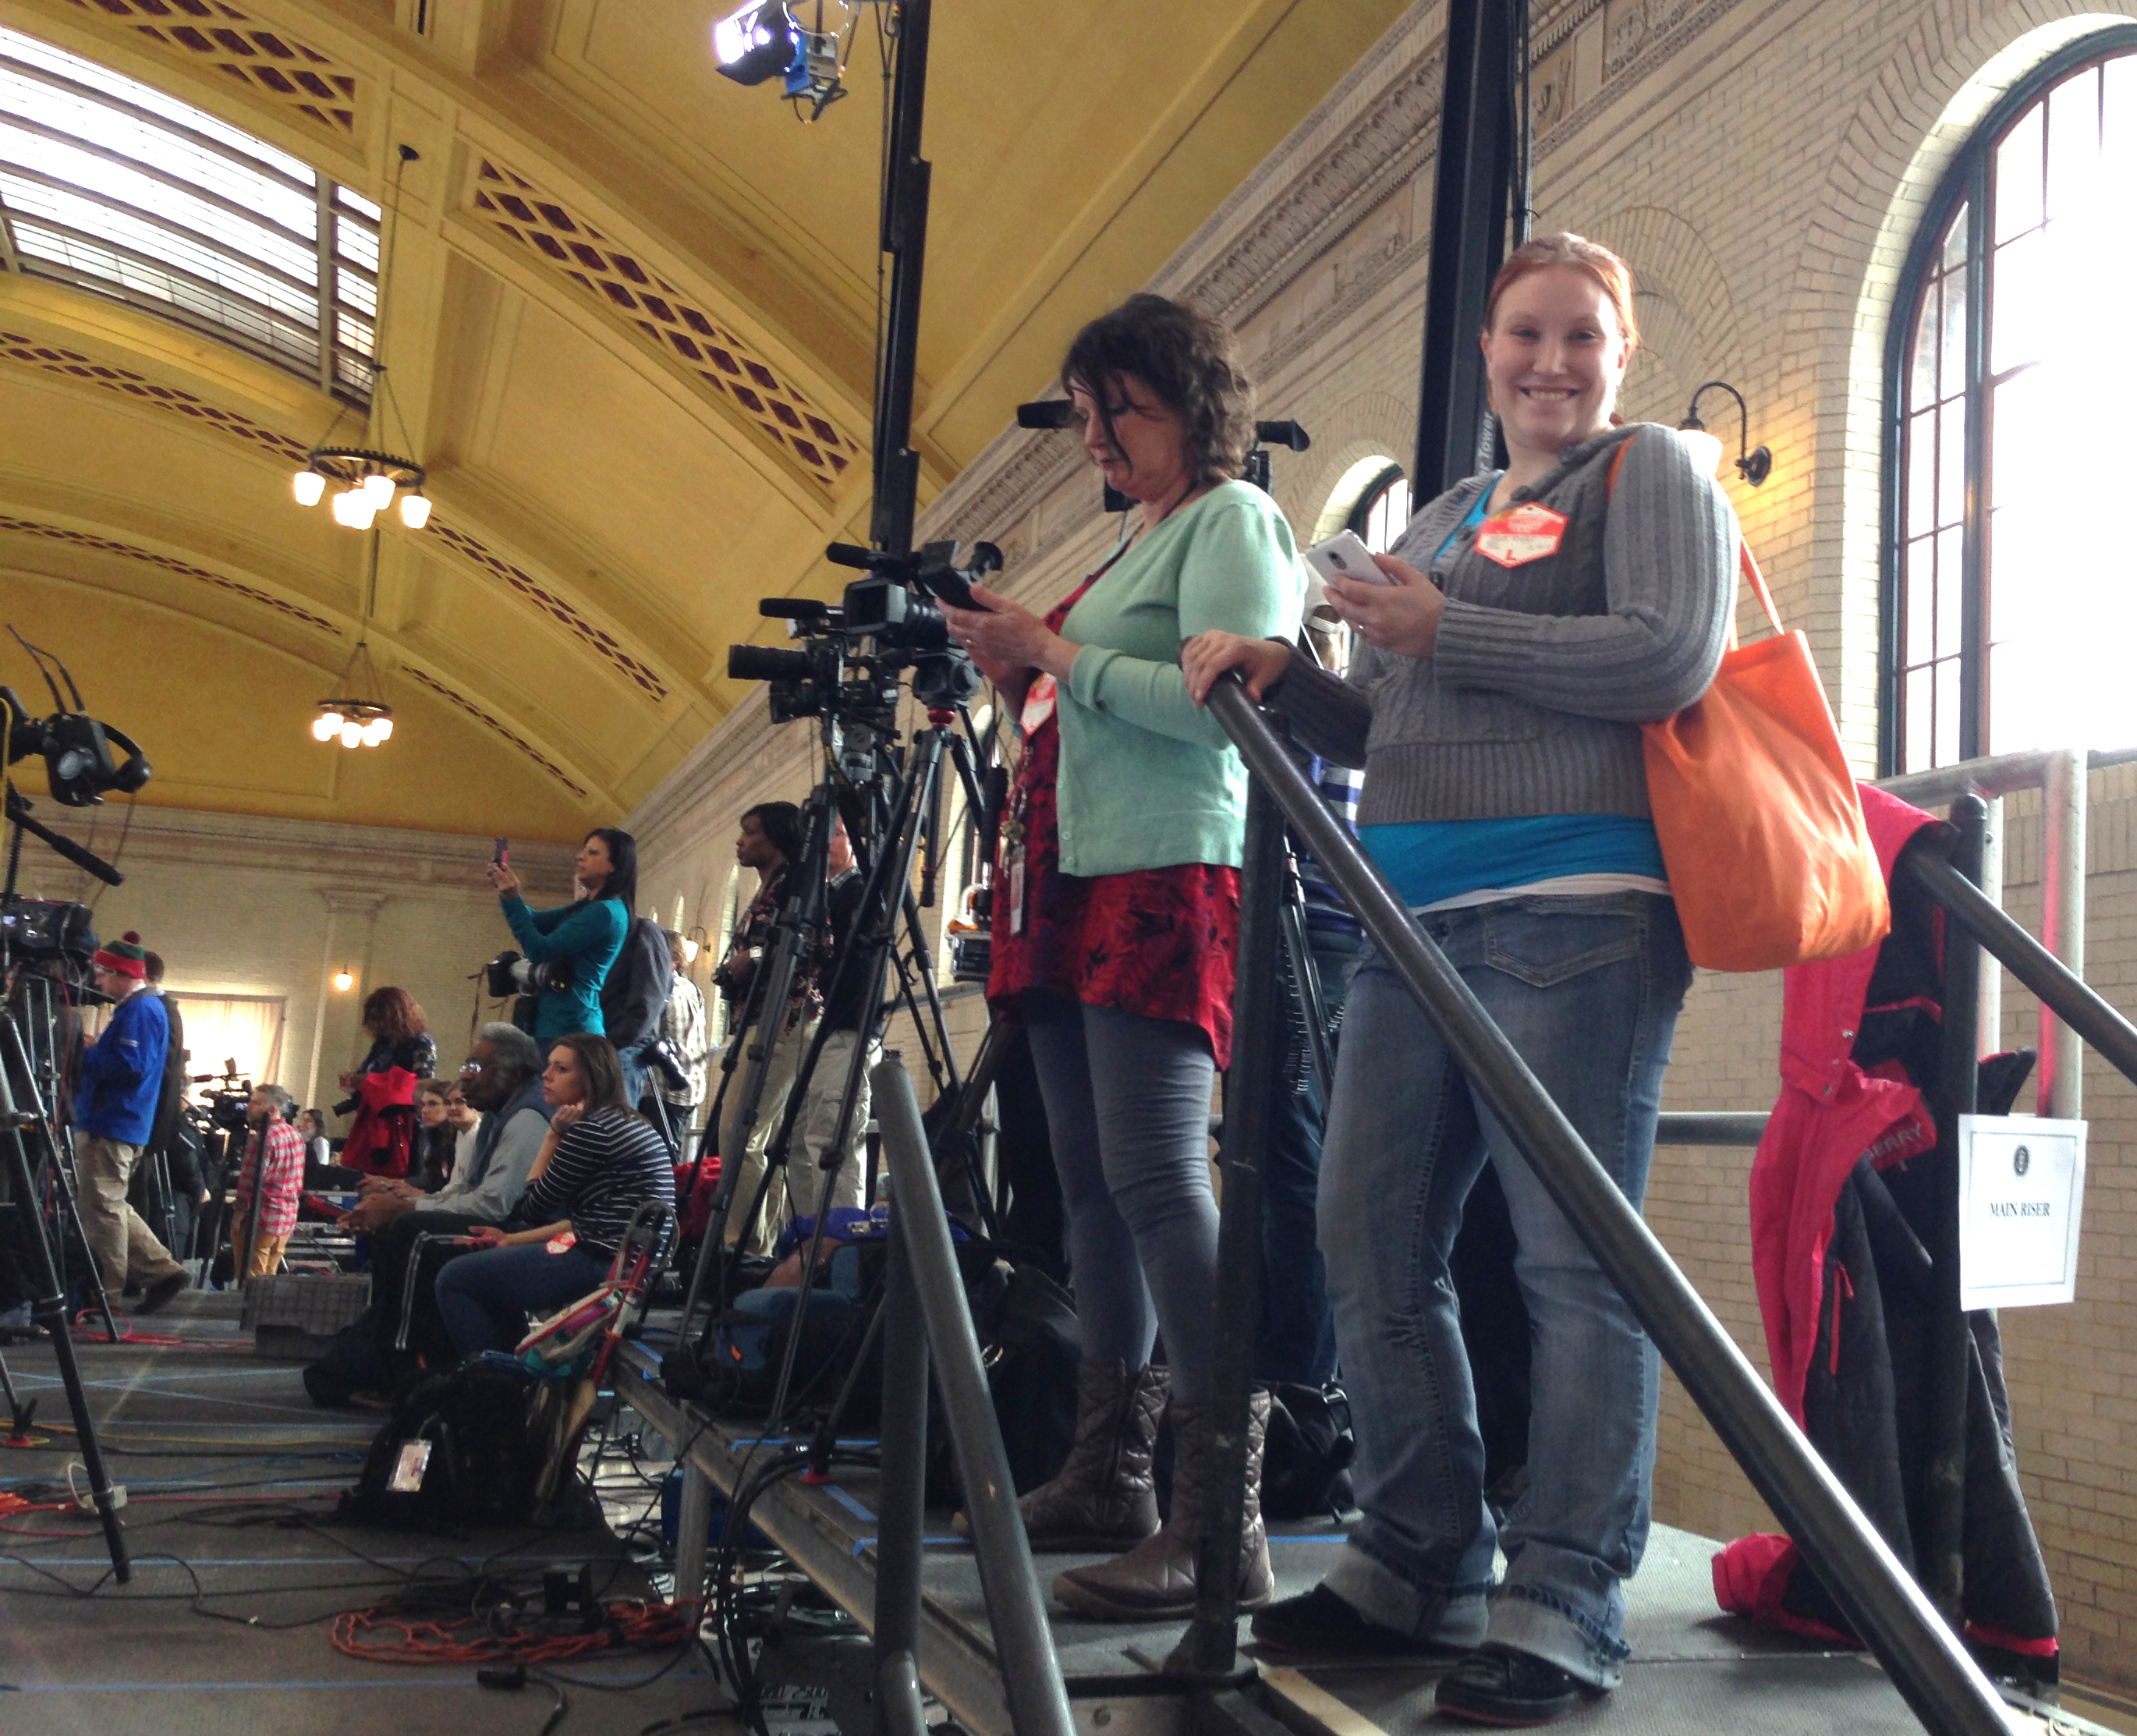 ARCC student Mara Meyer prepares to cover President Barack Obama's Feb. 26 press conference at Union Depot in St. Paul. COURTESY MARA K. MEYER